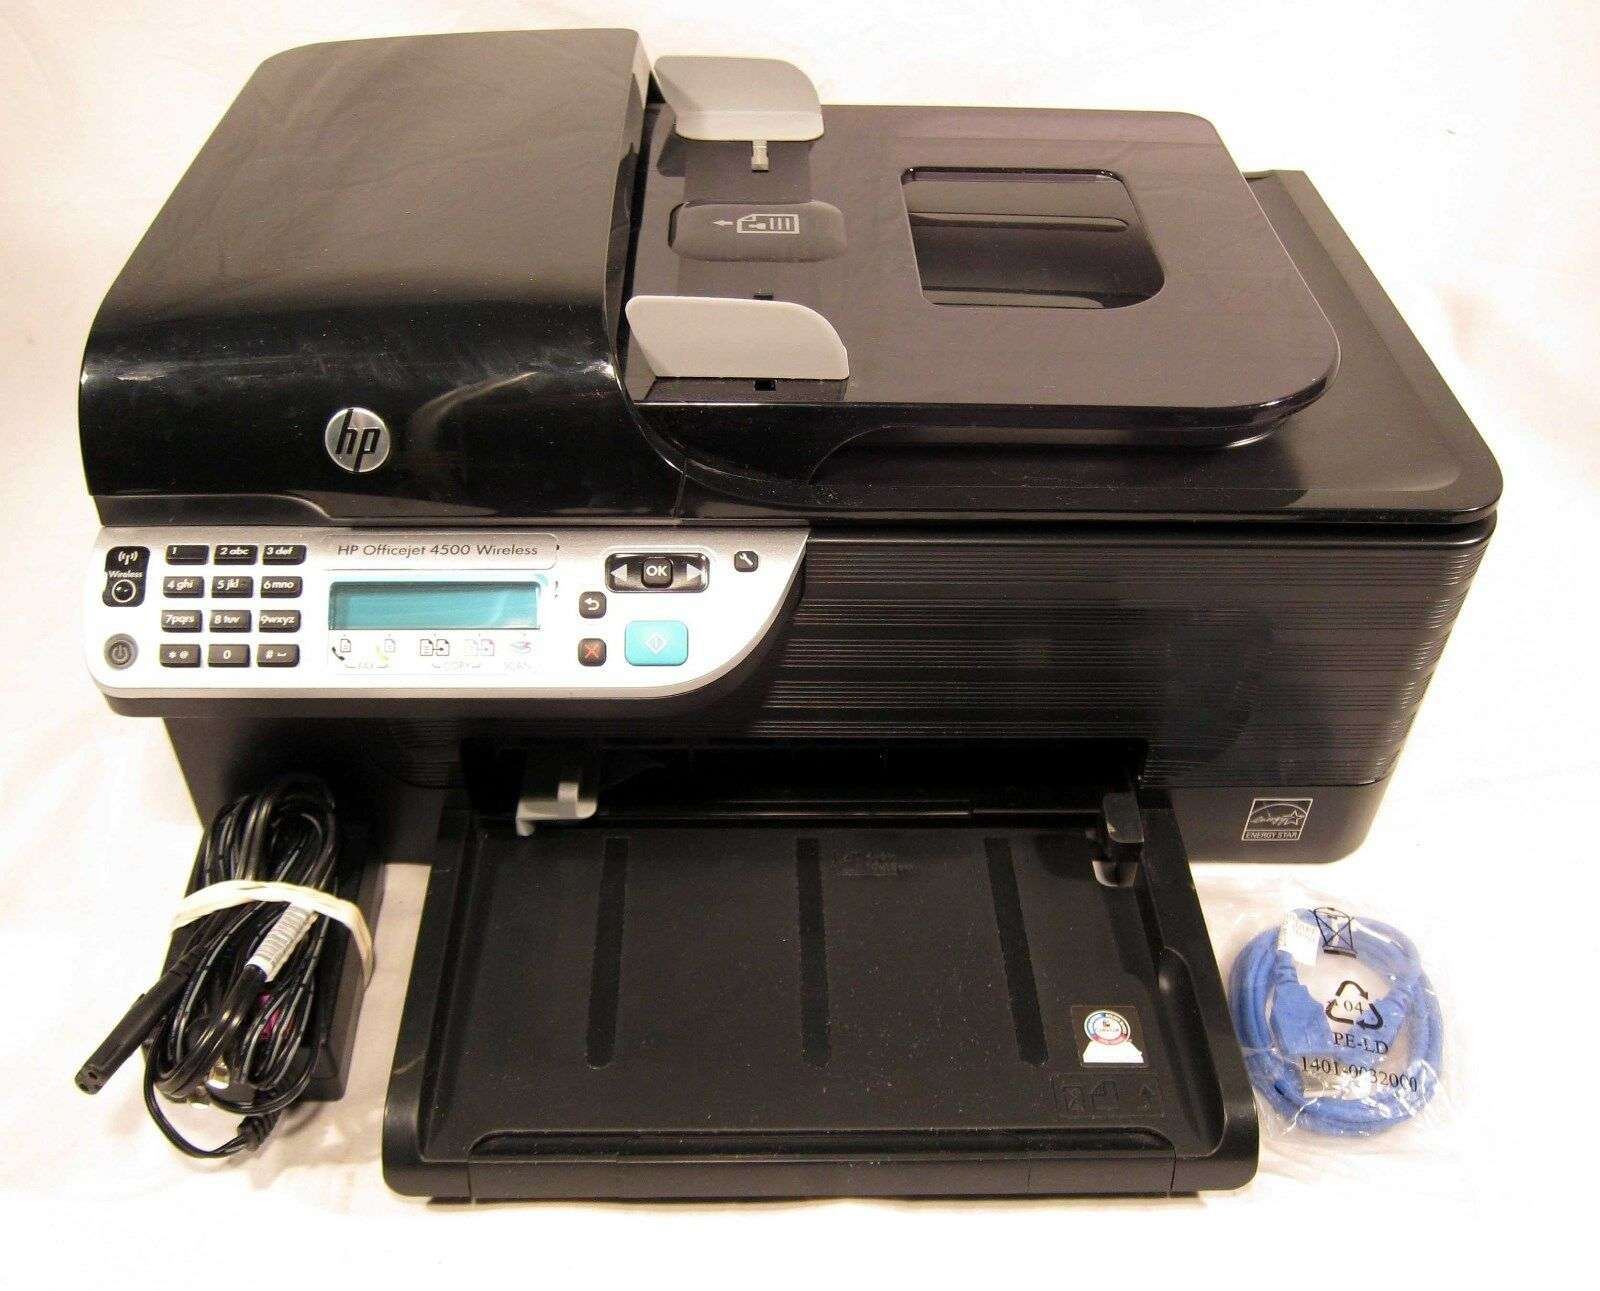 Indoor Of See More Hp Officejet All One Color Photo Inkjet Printer Scanner Hp Officejet 4500 Not Printing Hp Officejet 4500 G510g dpreview Hp Officejet 4500